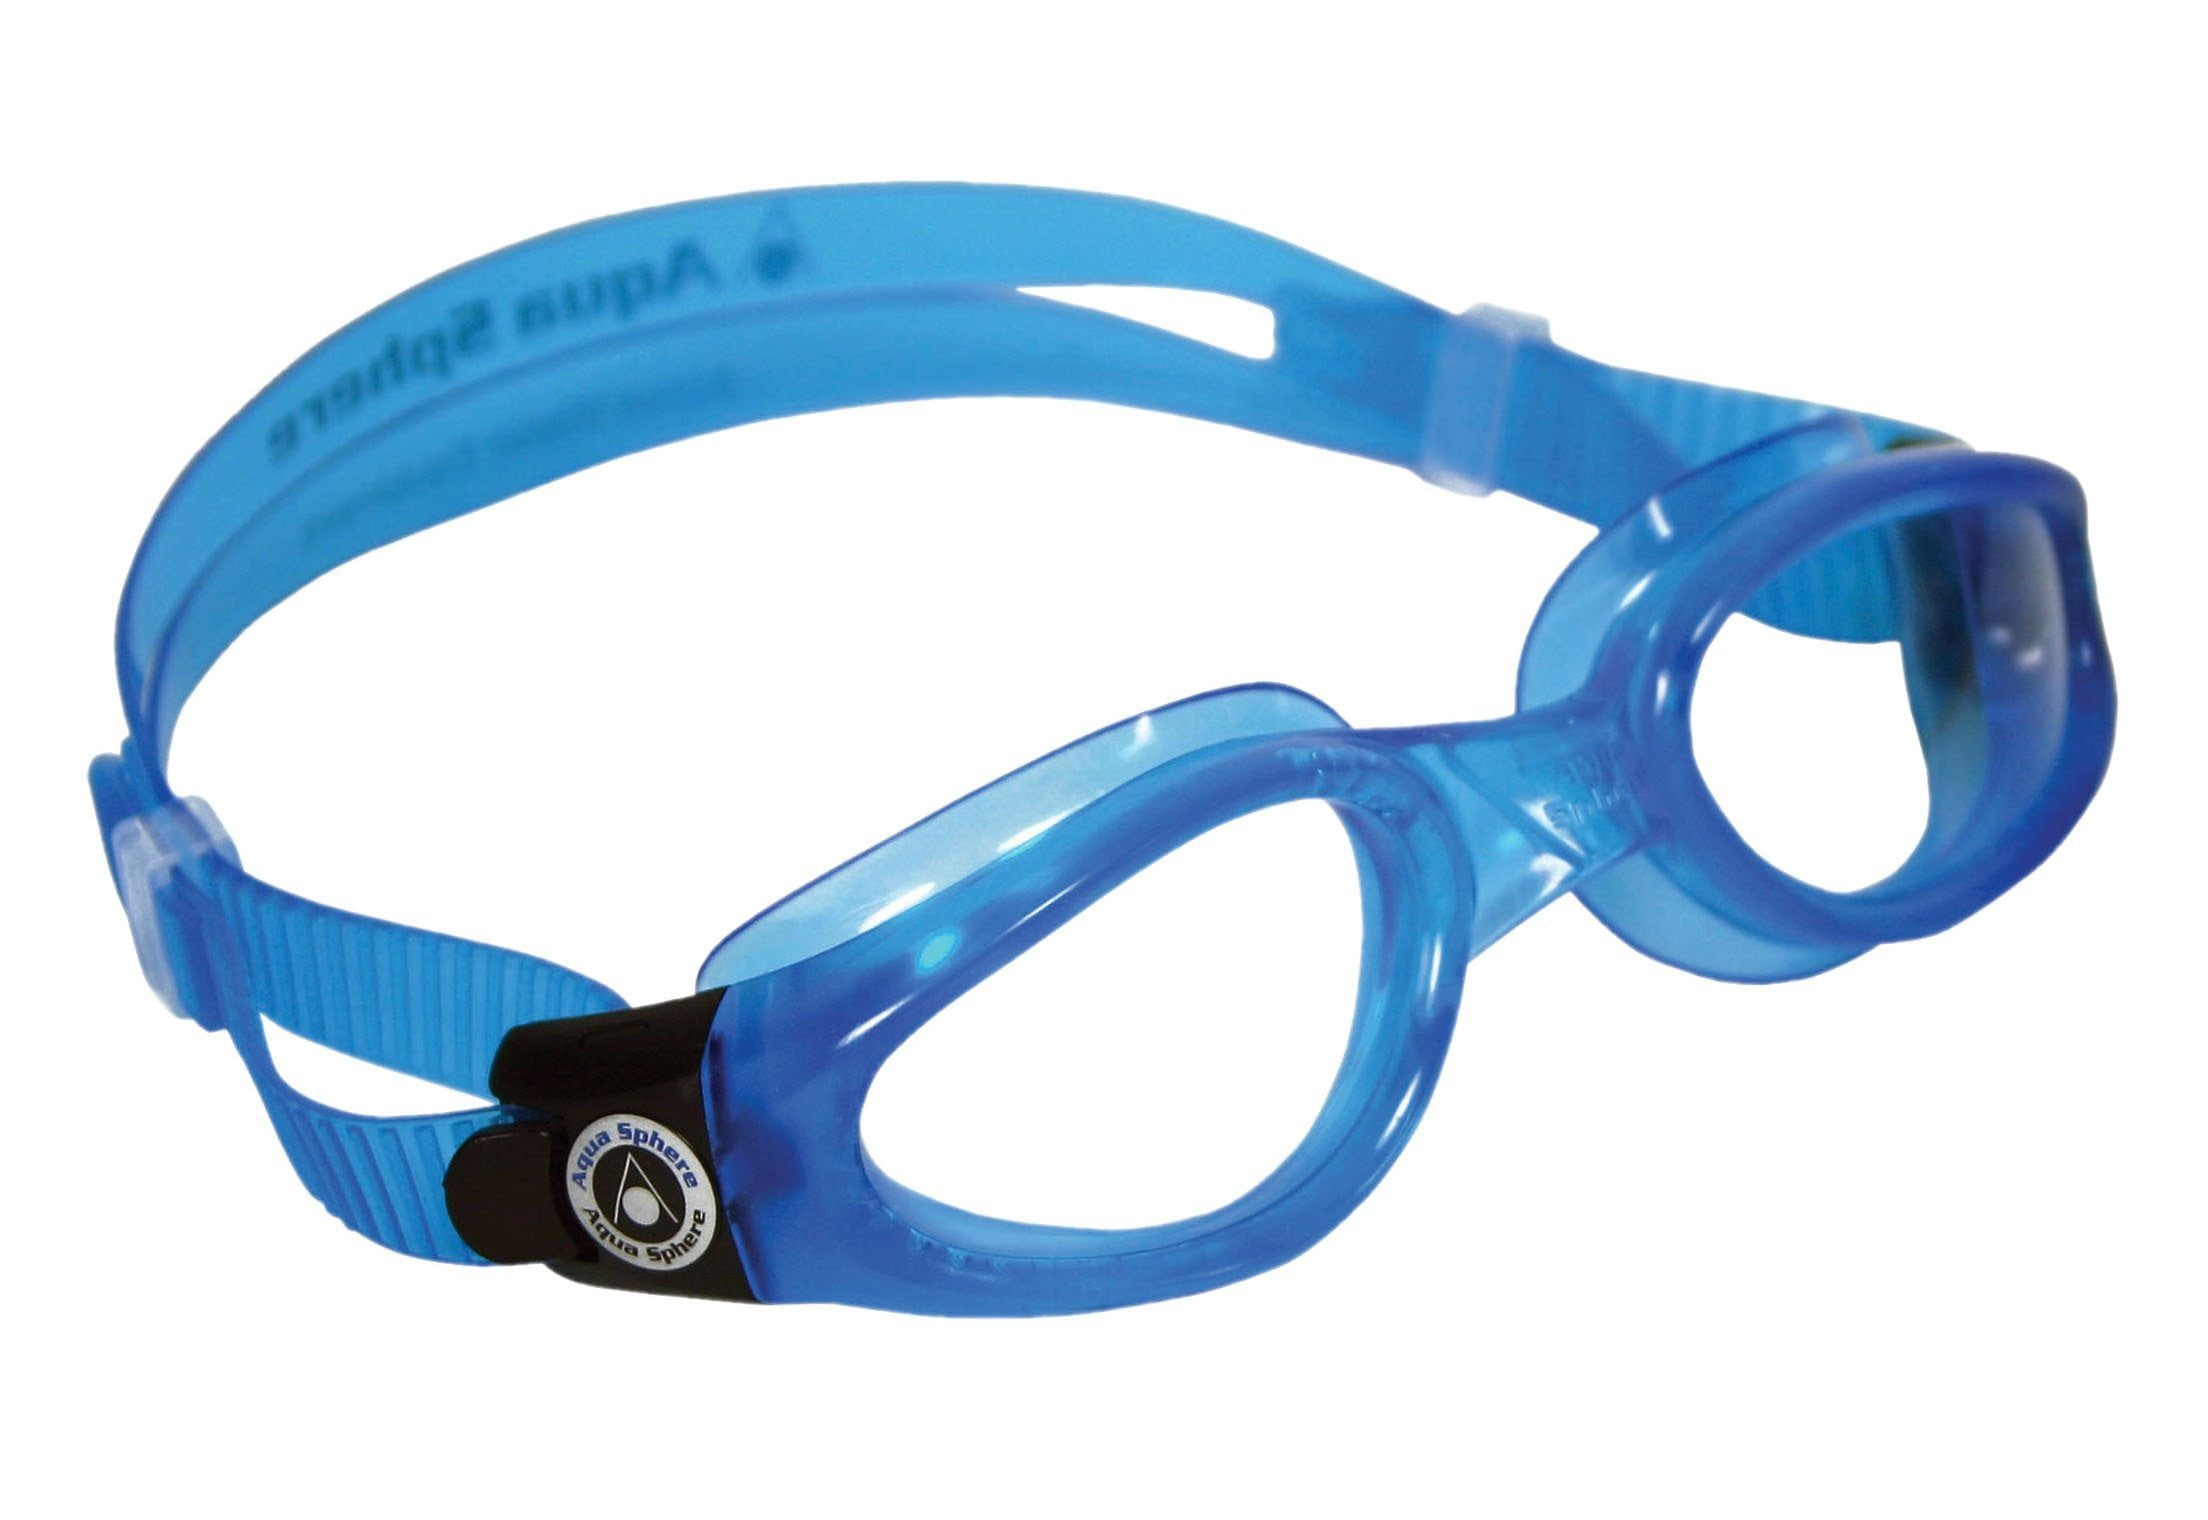 Image of Aqua Sphere Schwimmbrille »KAIMAN SMALL helles Glas«